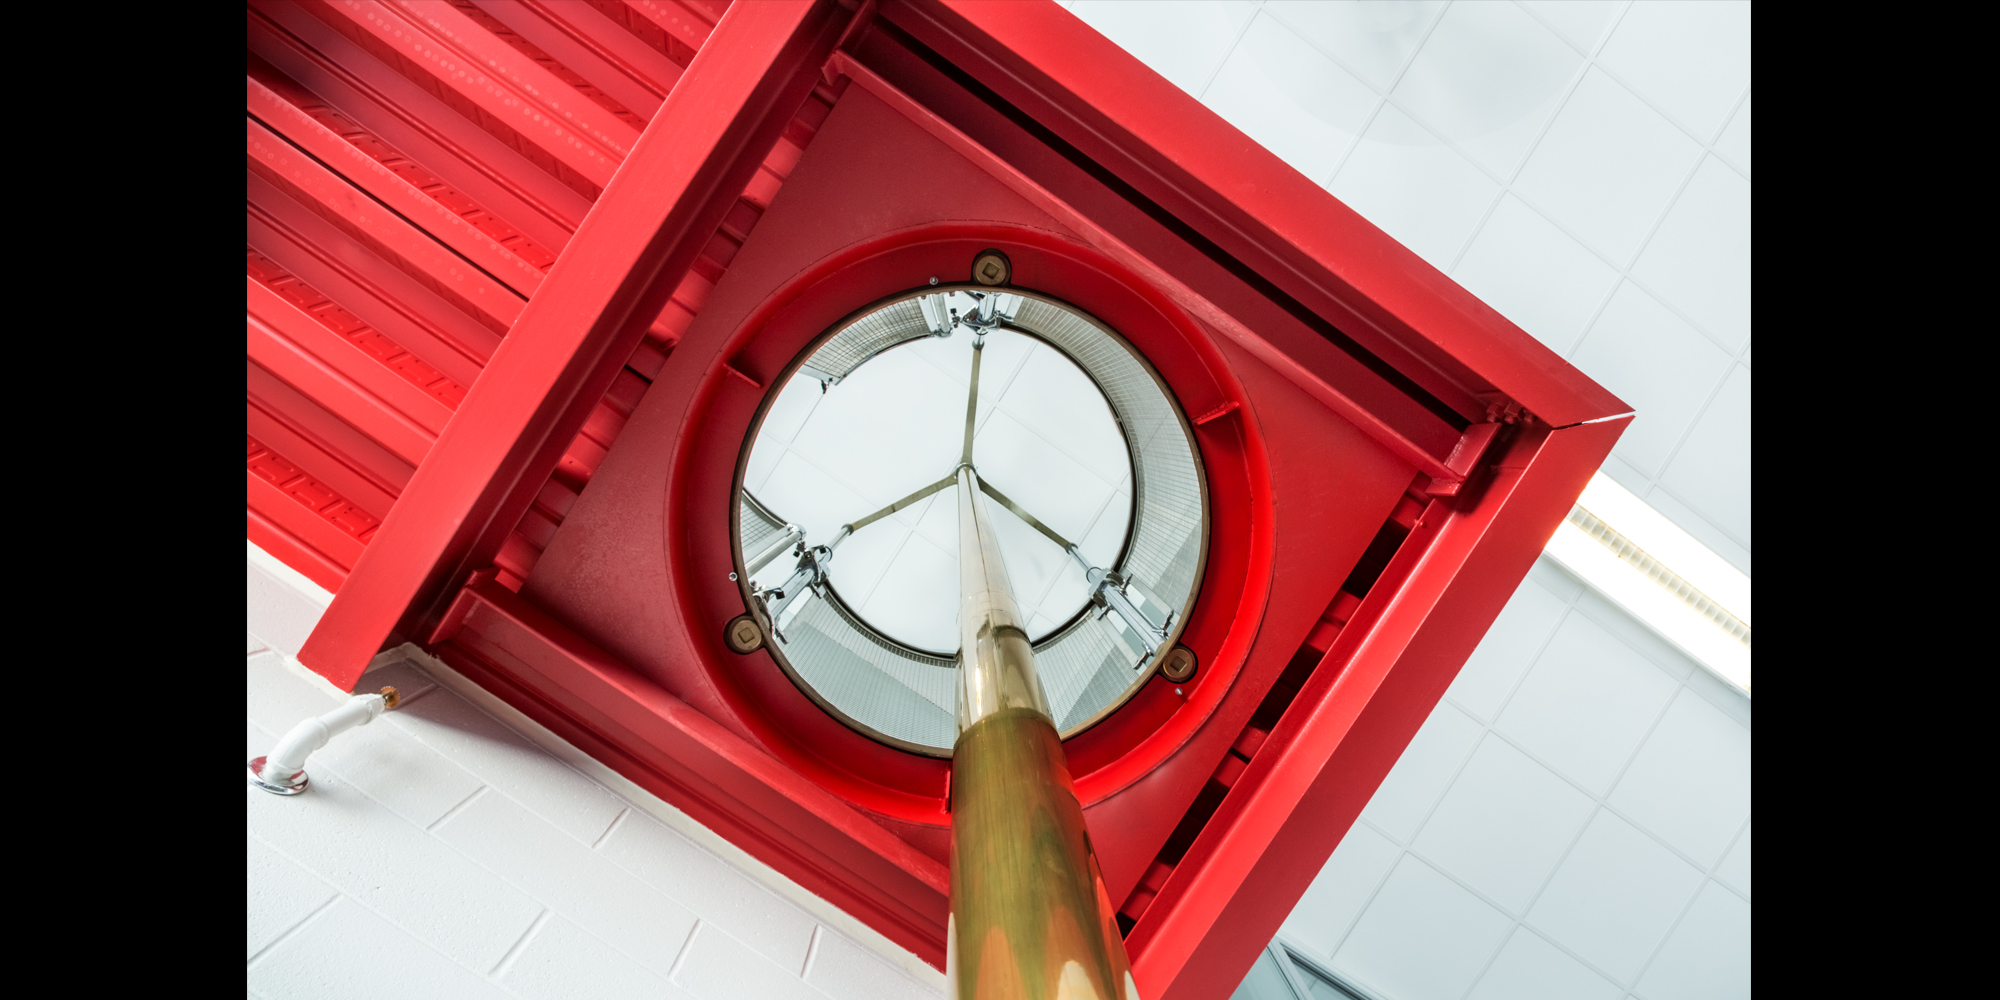 The Modern Fire Station: Bold Designs, Clean Lines, & Civic